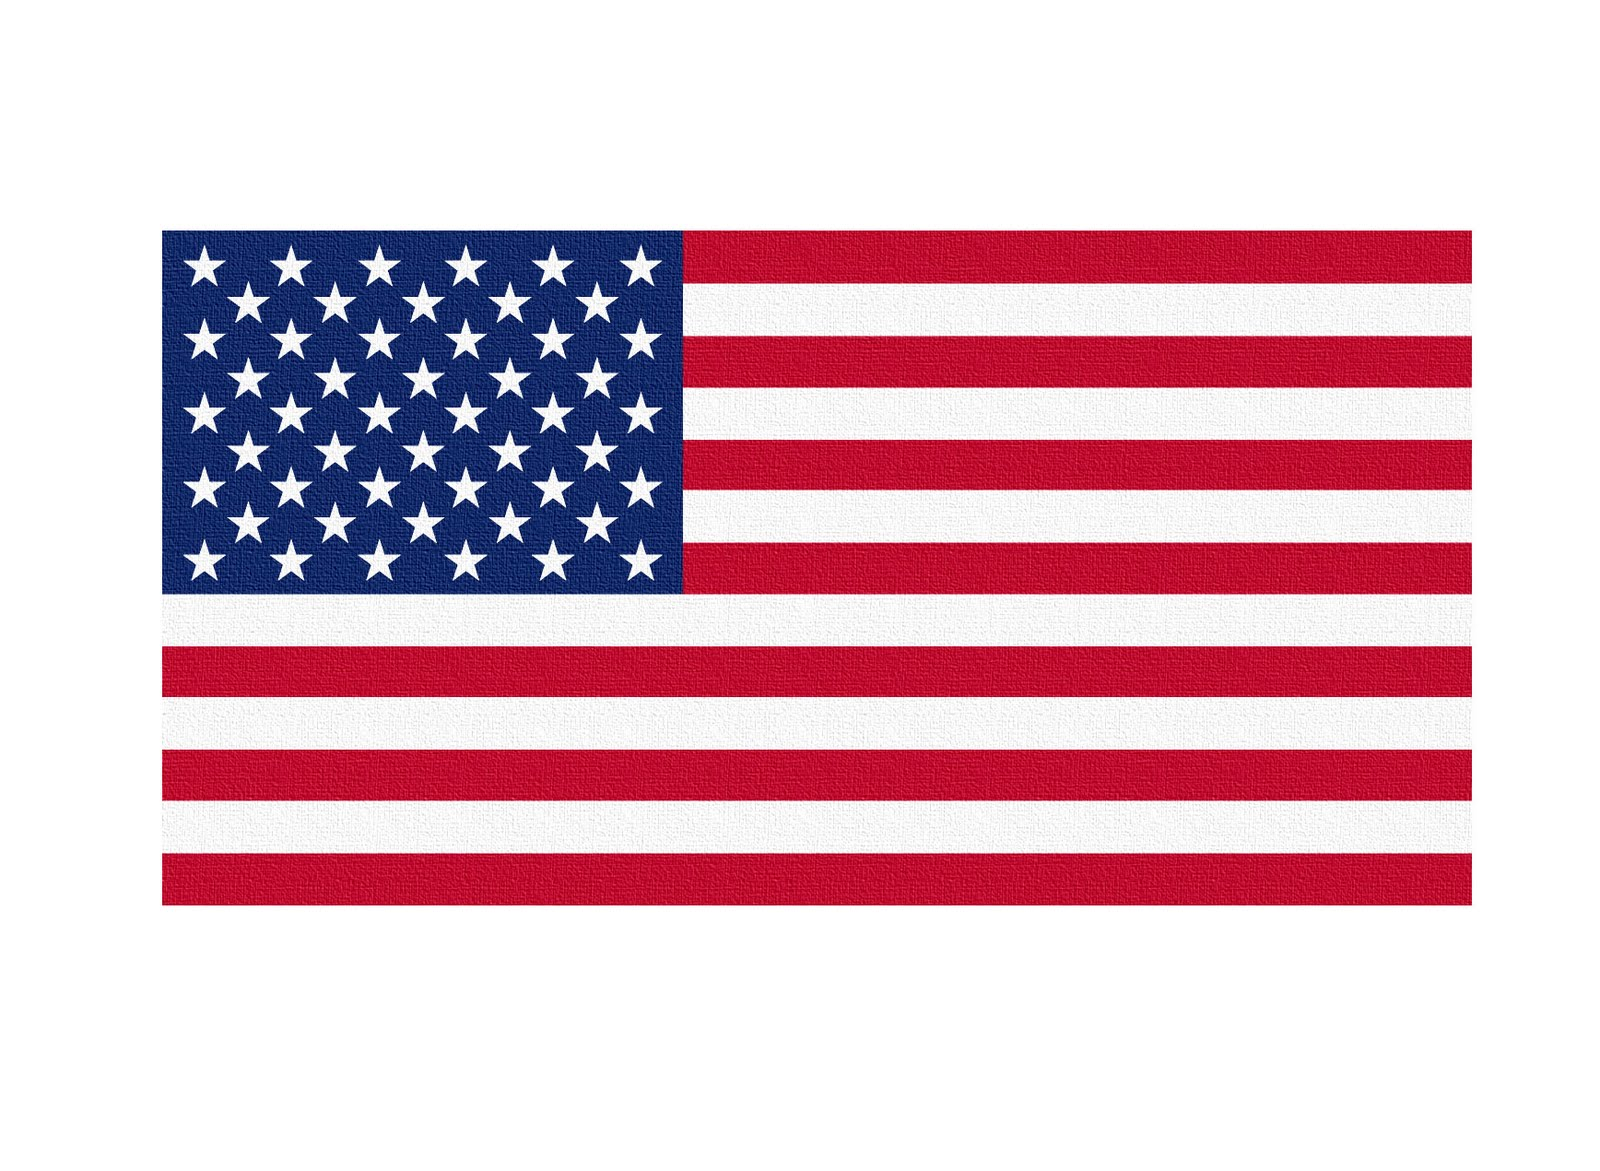 Us flag clipart vector banner free American flag clip art vector - ClipartFest banner free